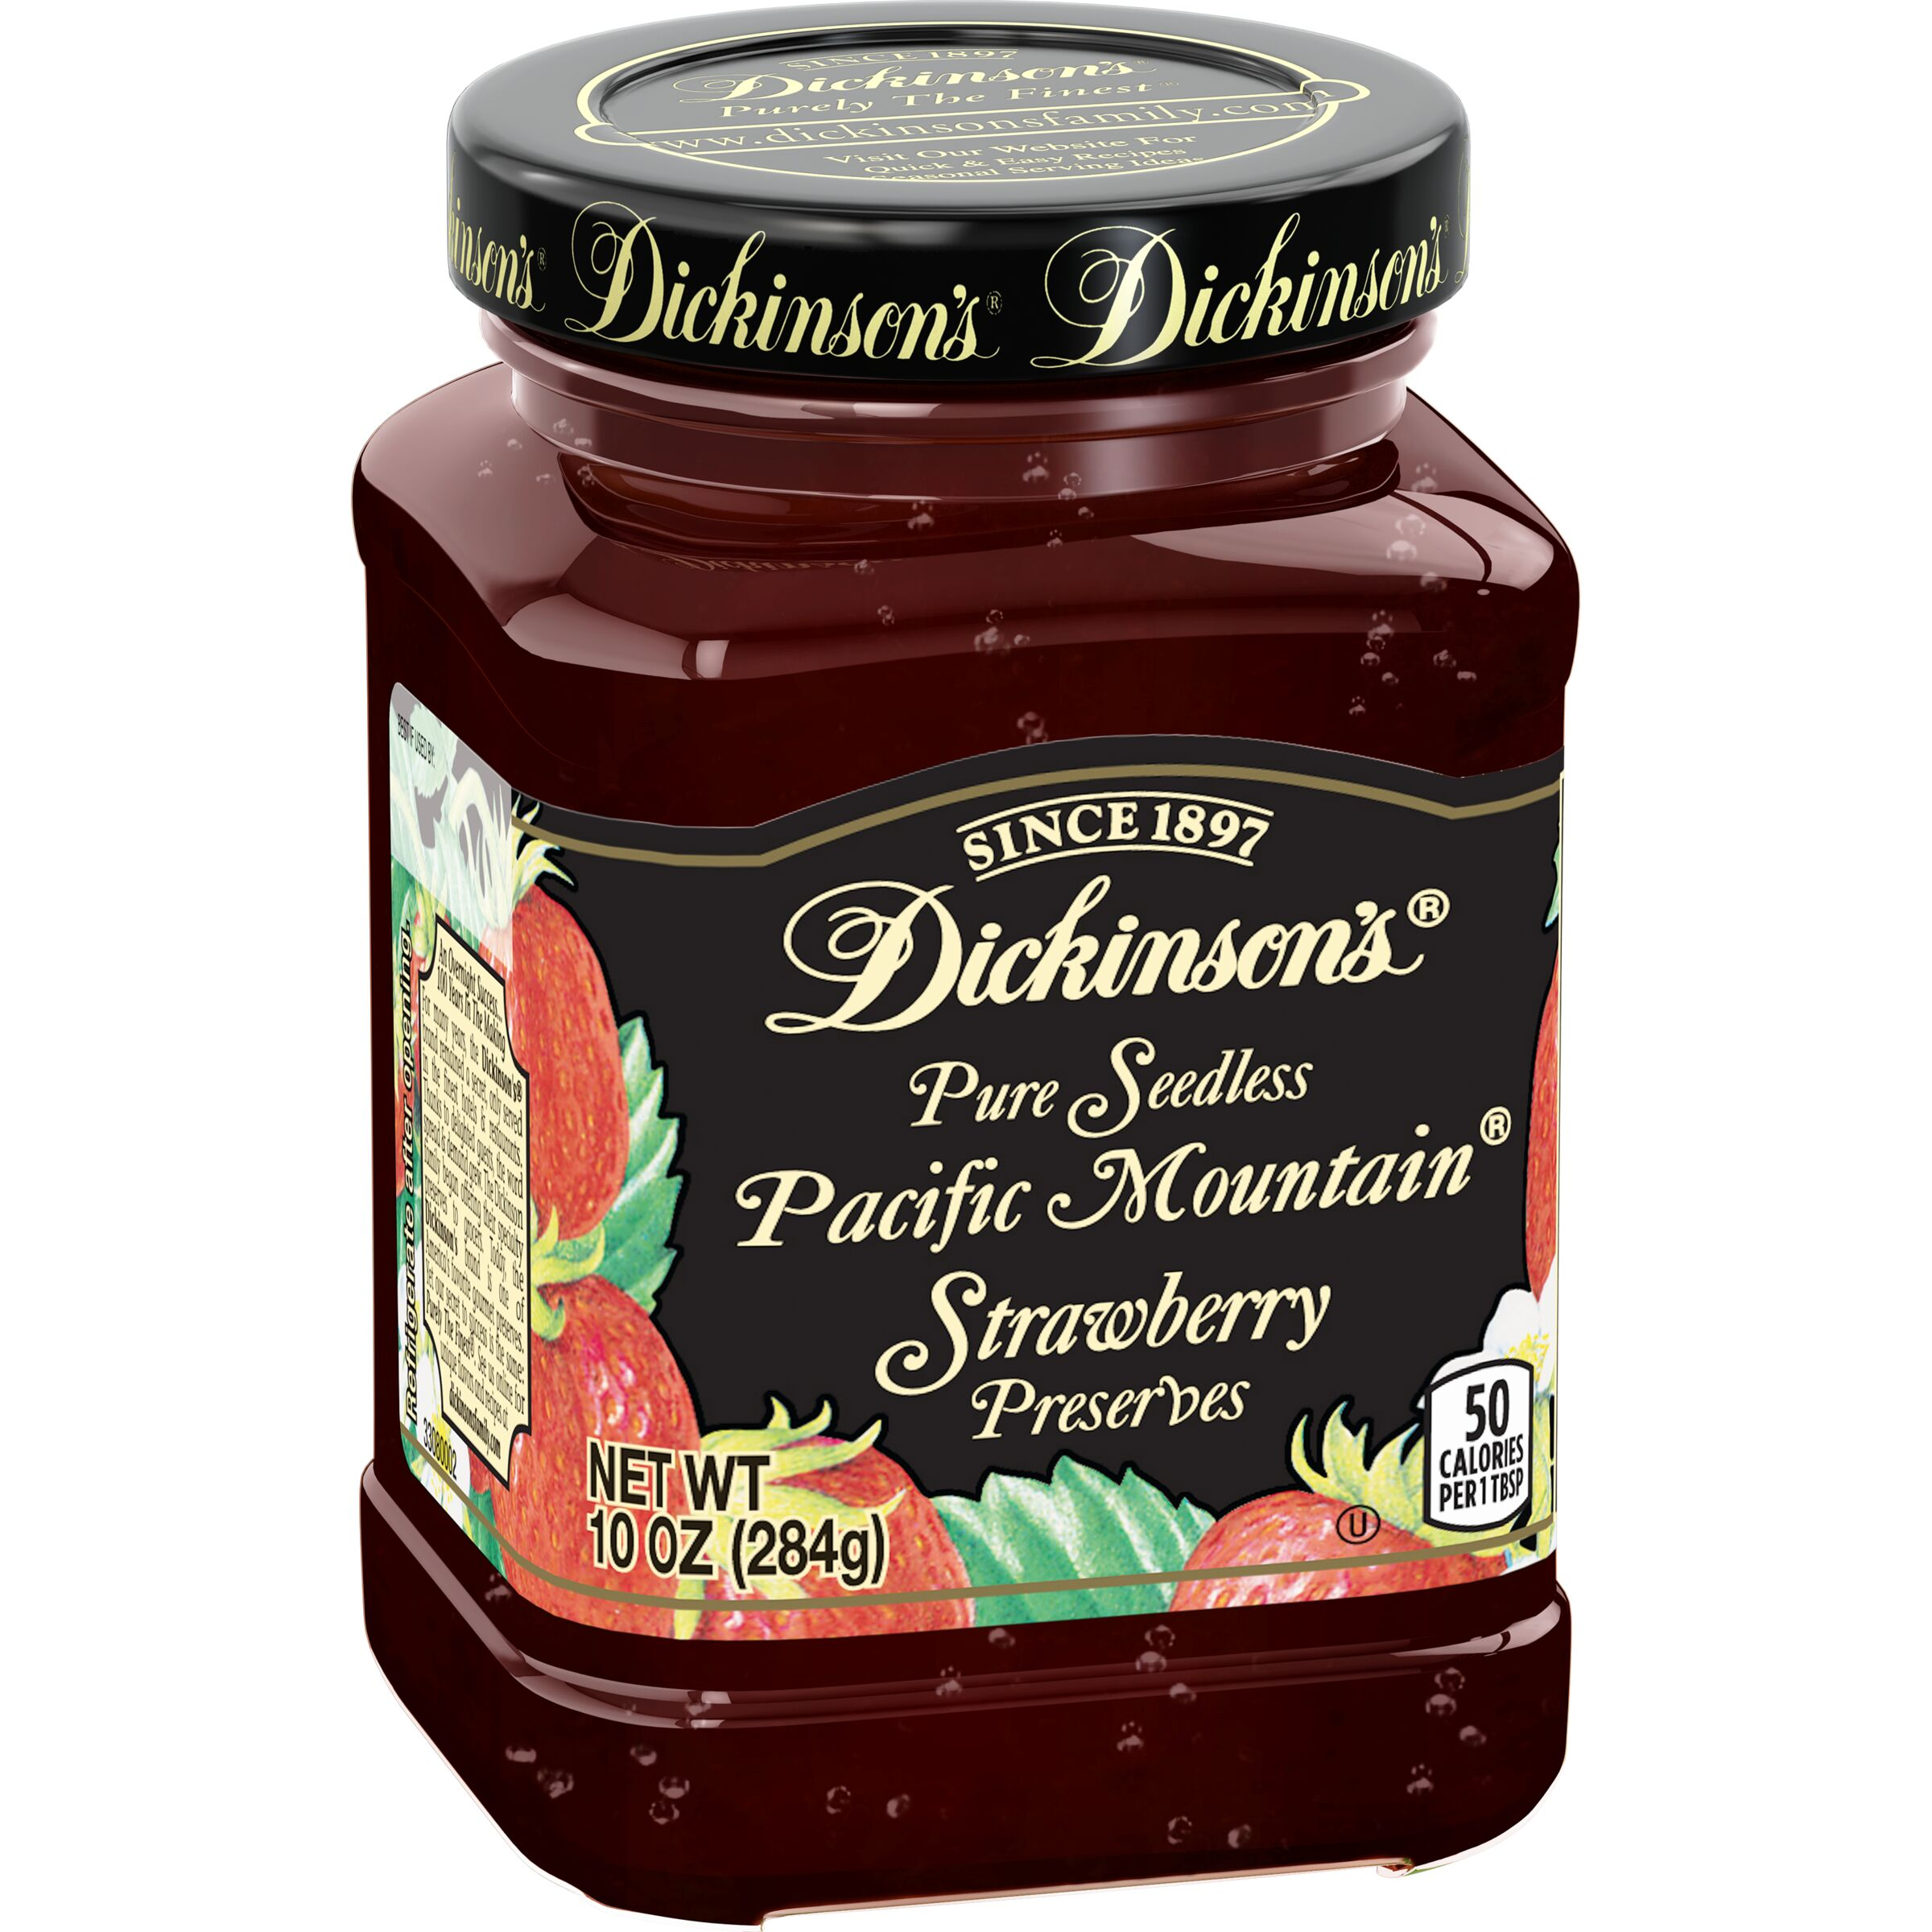 Dickinson's  Seedless Pacific Mountain® Strawberry Preserves